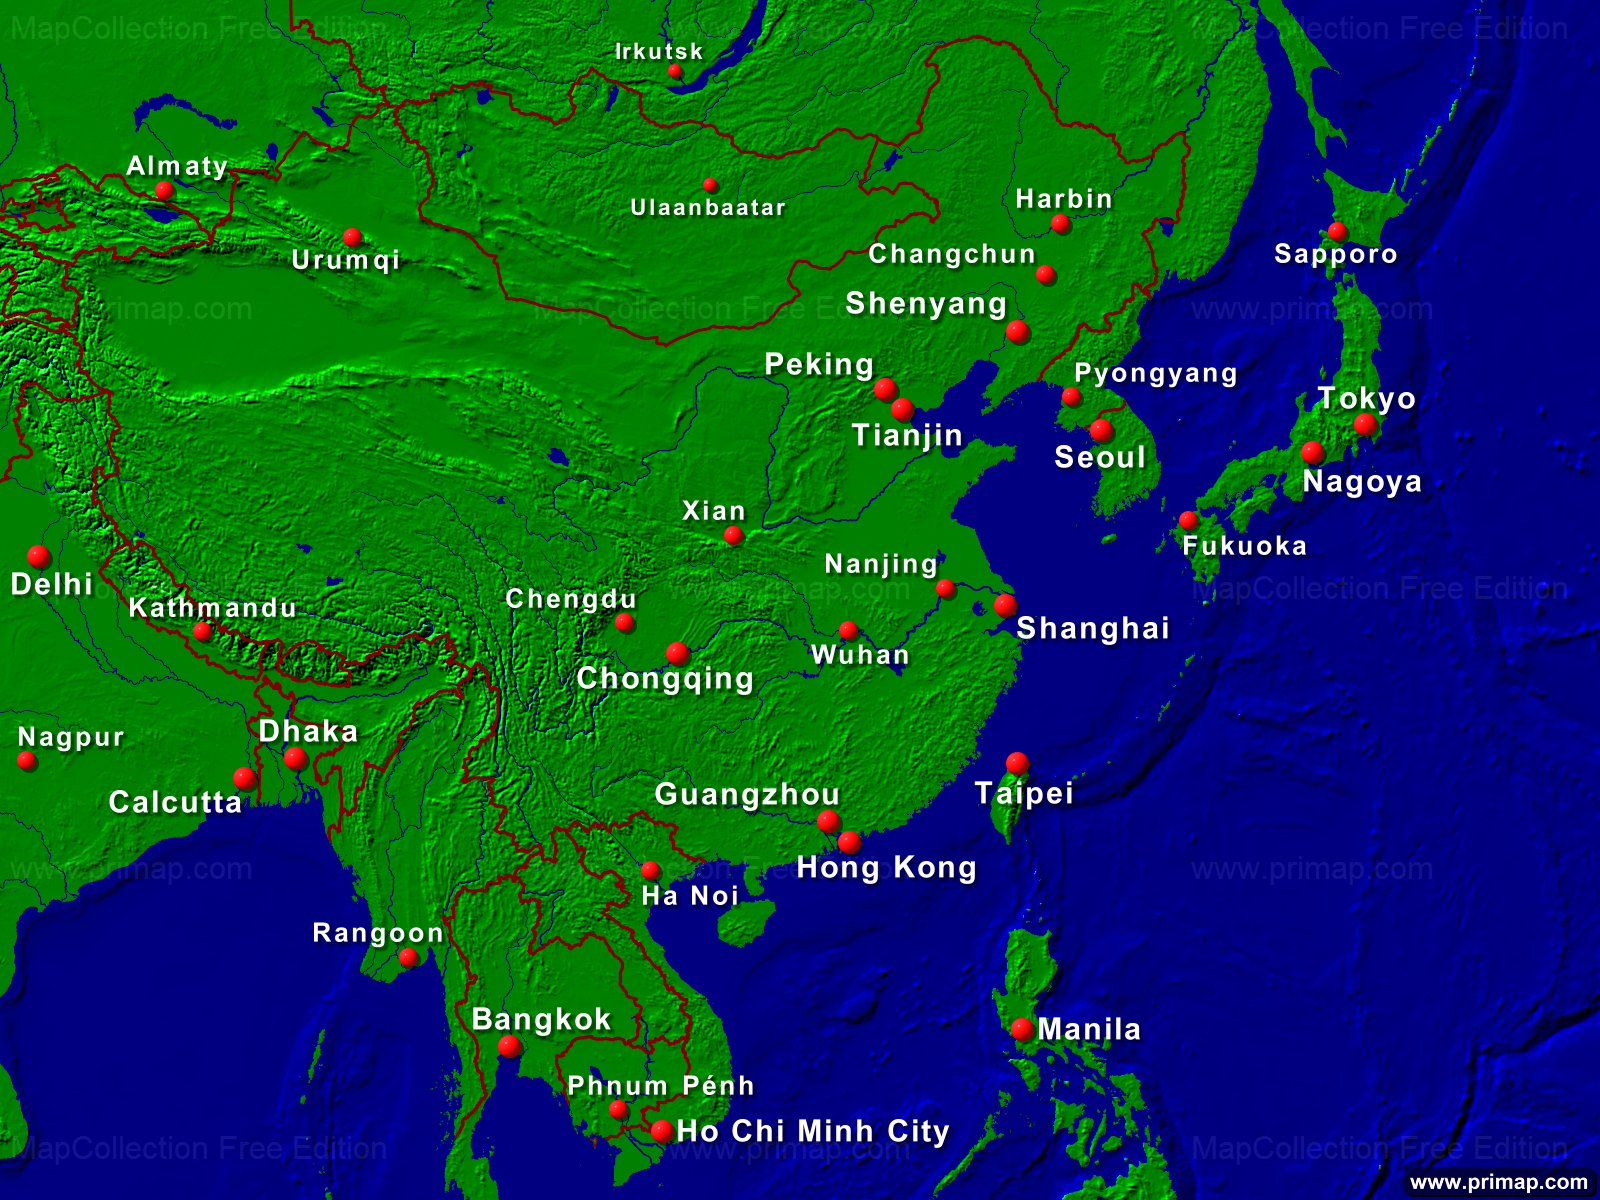 Show The Map Of Asia.Primap Continental Maps